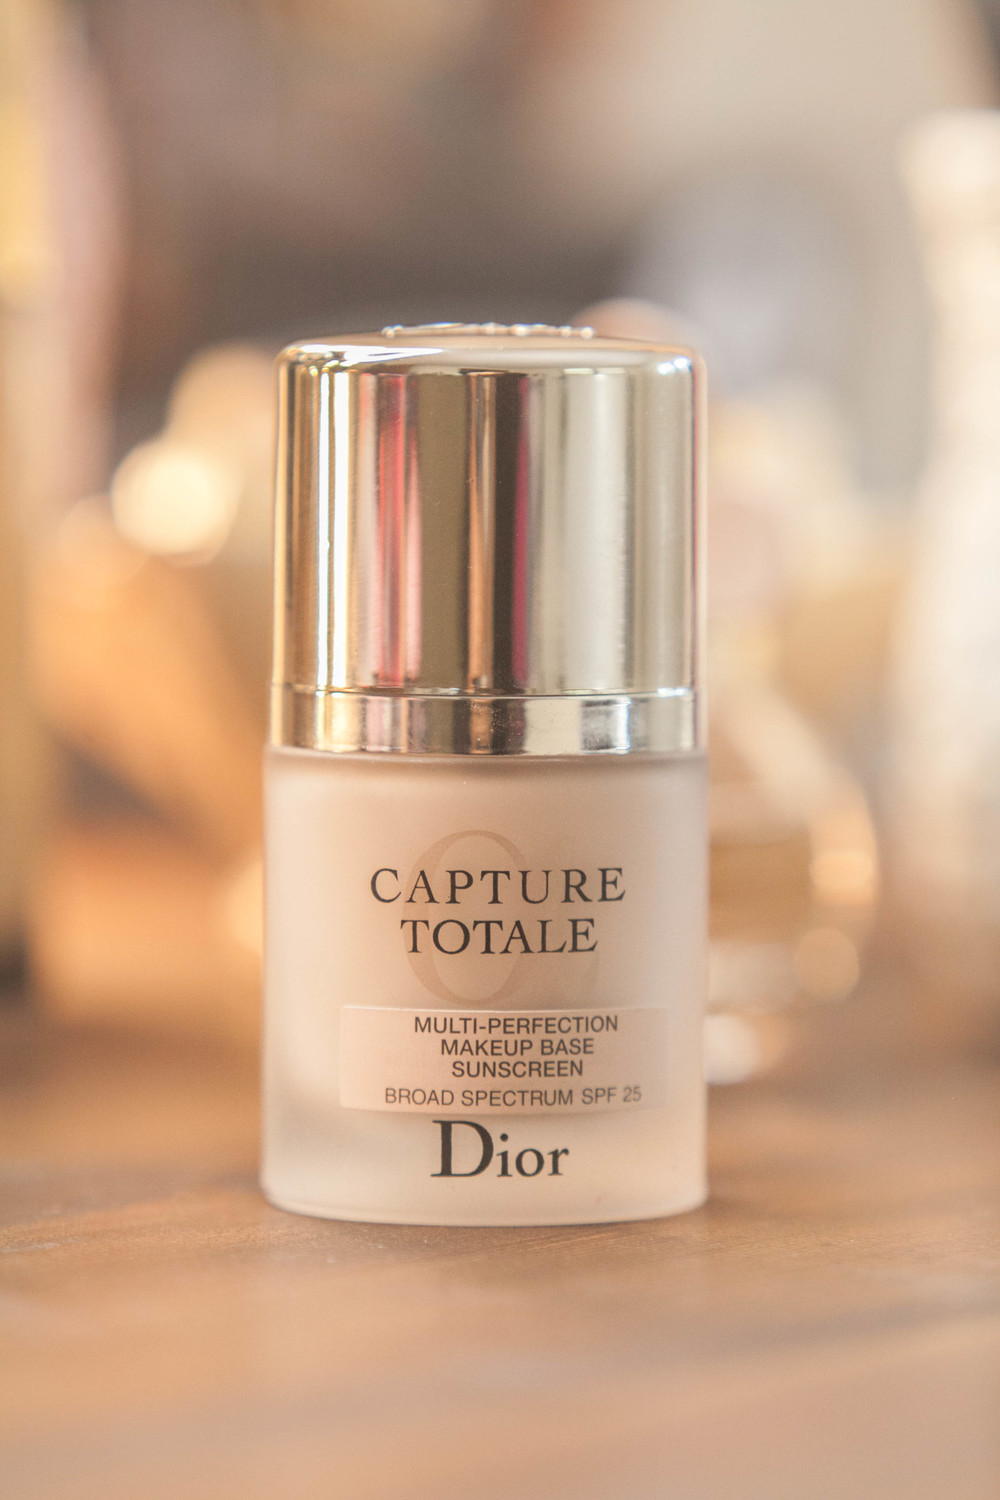 Dior SPF Capture Totale Sunscreen/Review